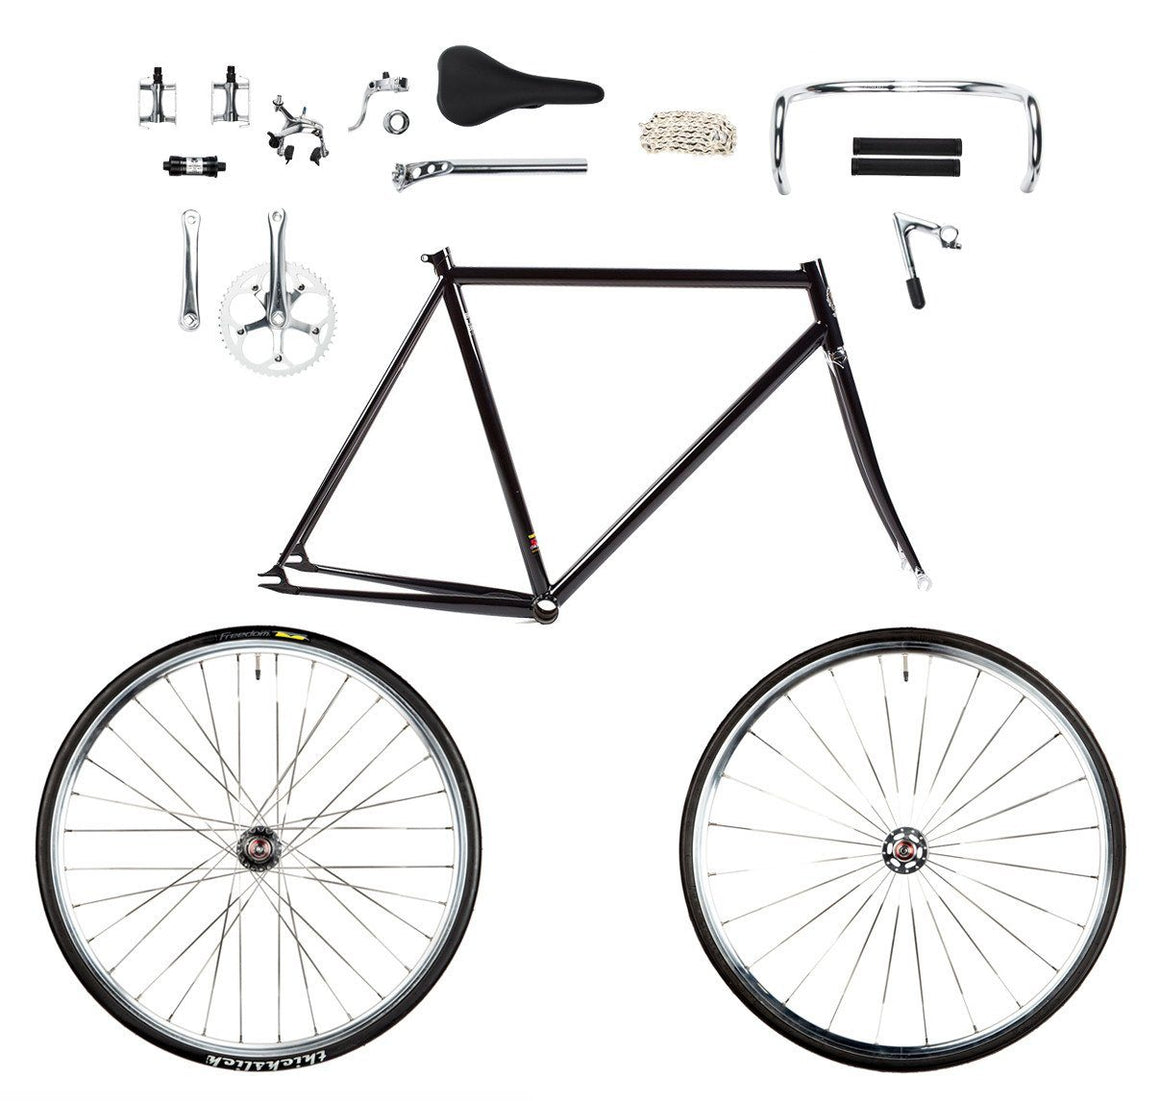 BLB Classic-R DIY bundle with frame, fork, wheelset, and build kit